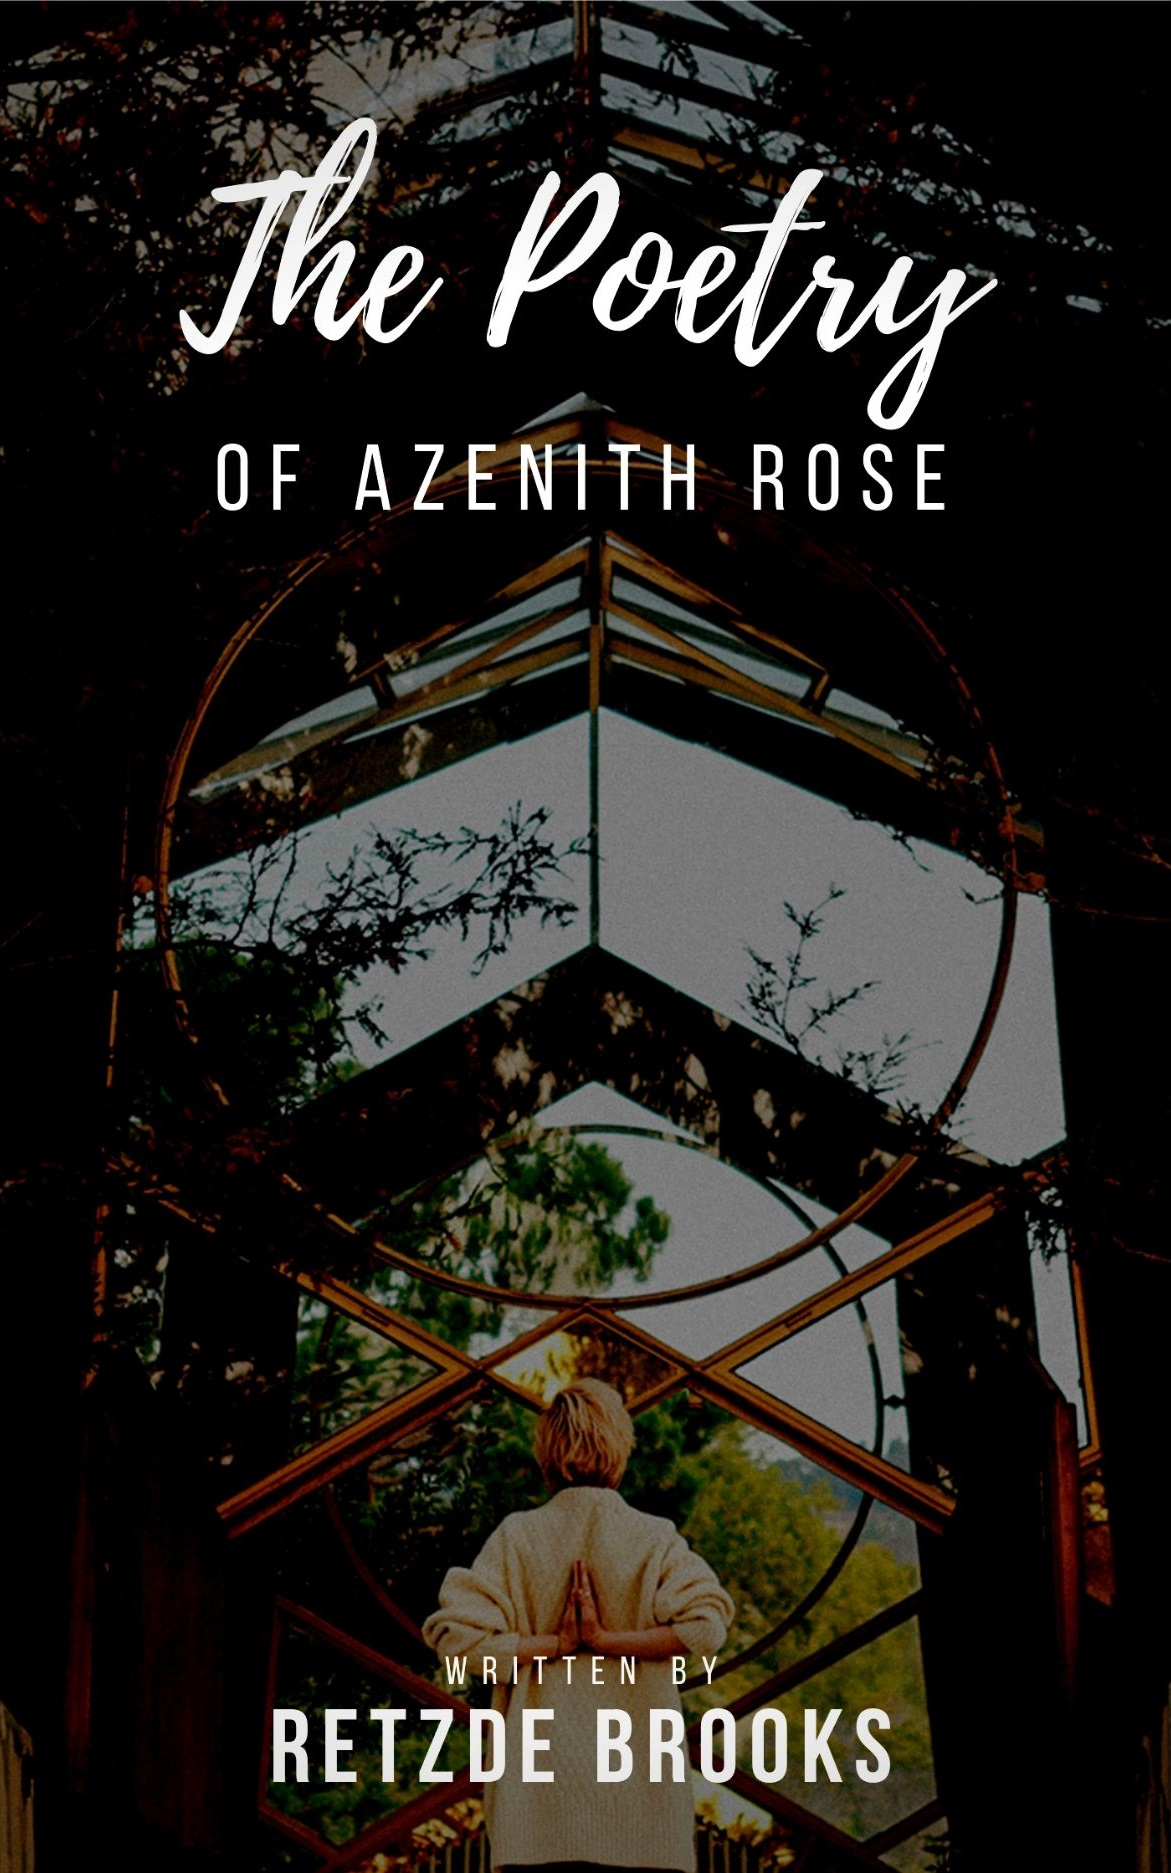 Retzde Brooks, Author of: The Poetry Of Azenith Rose